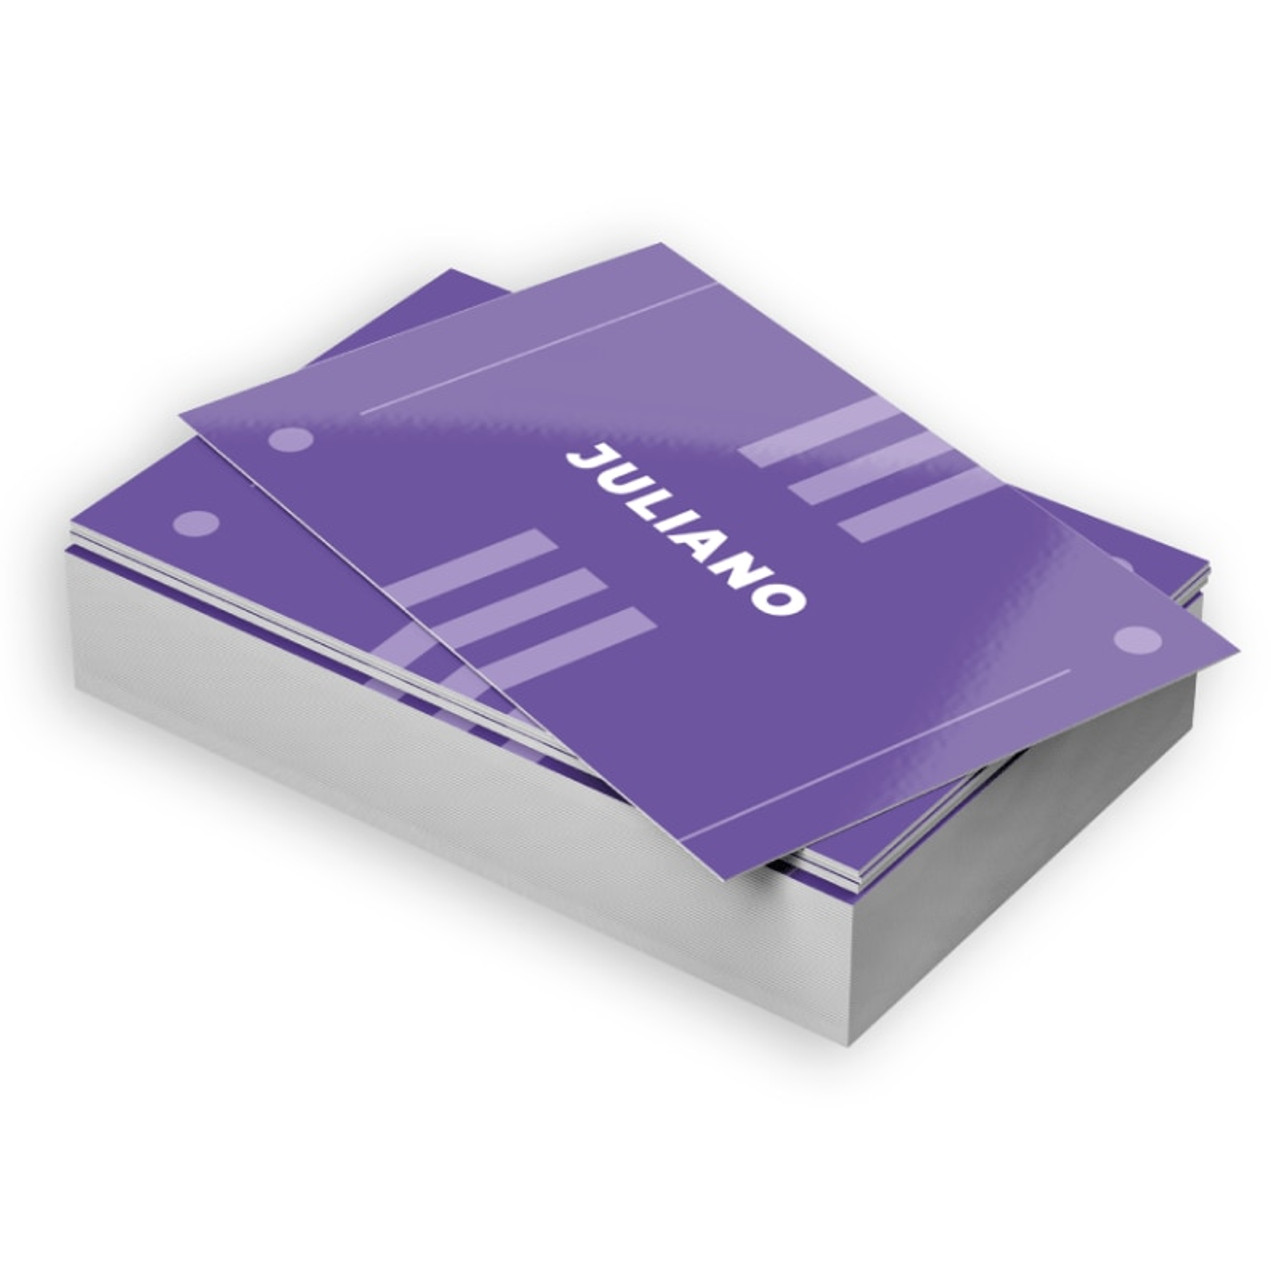 Business cards are widely used as a networking tool and a way to make a good first impression. These business cards combine a semi-gloss coated side with an uncoated, writable side.